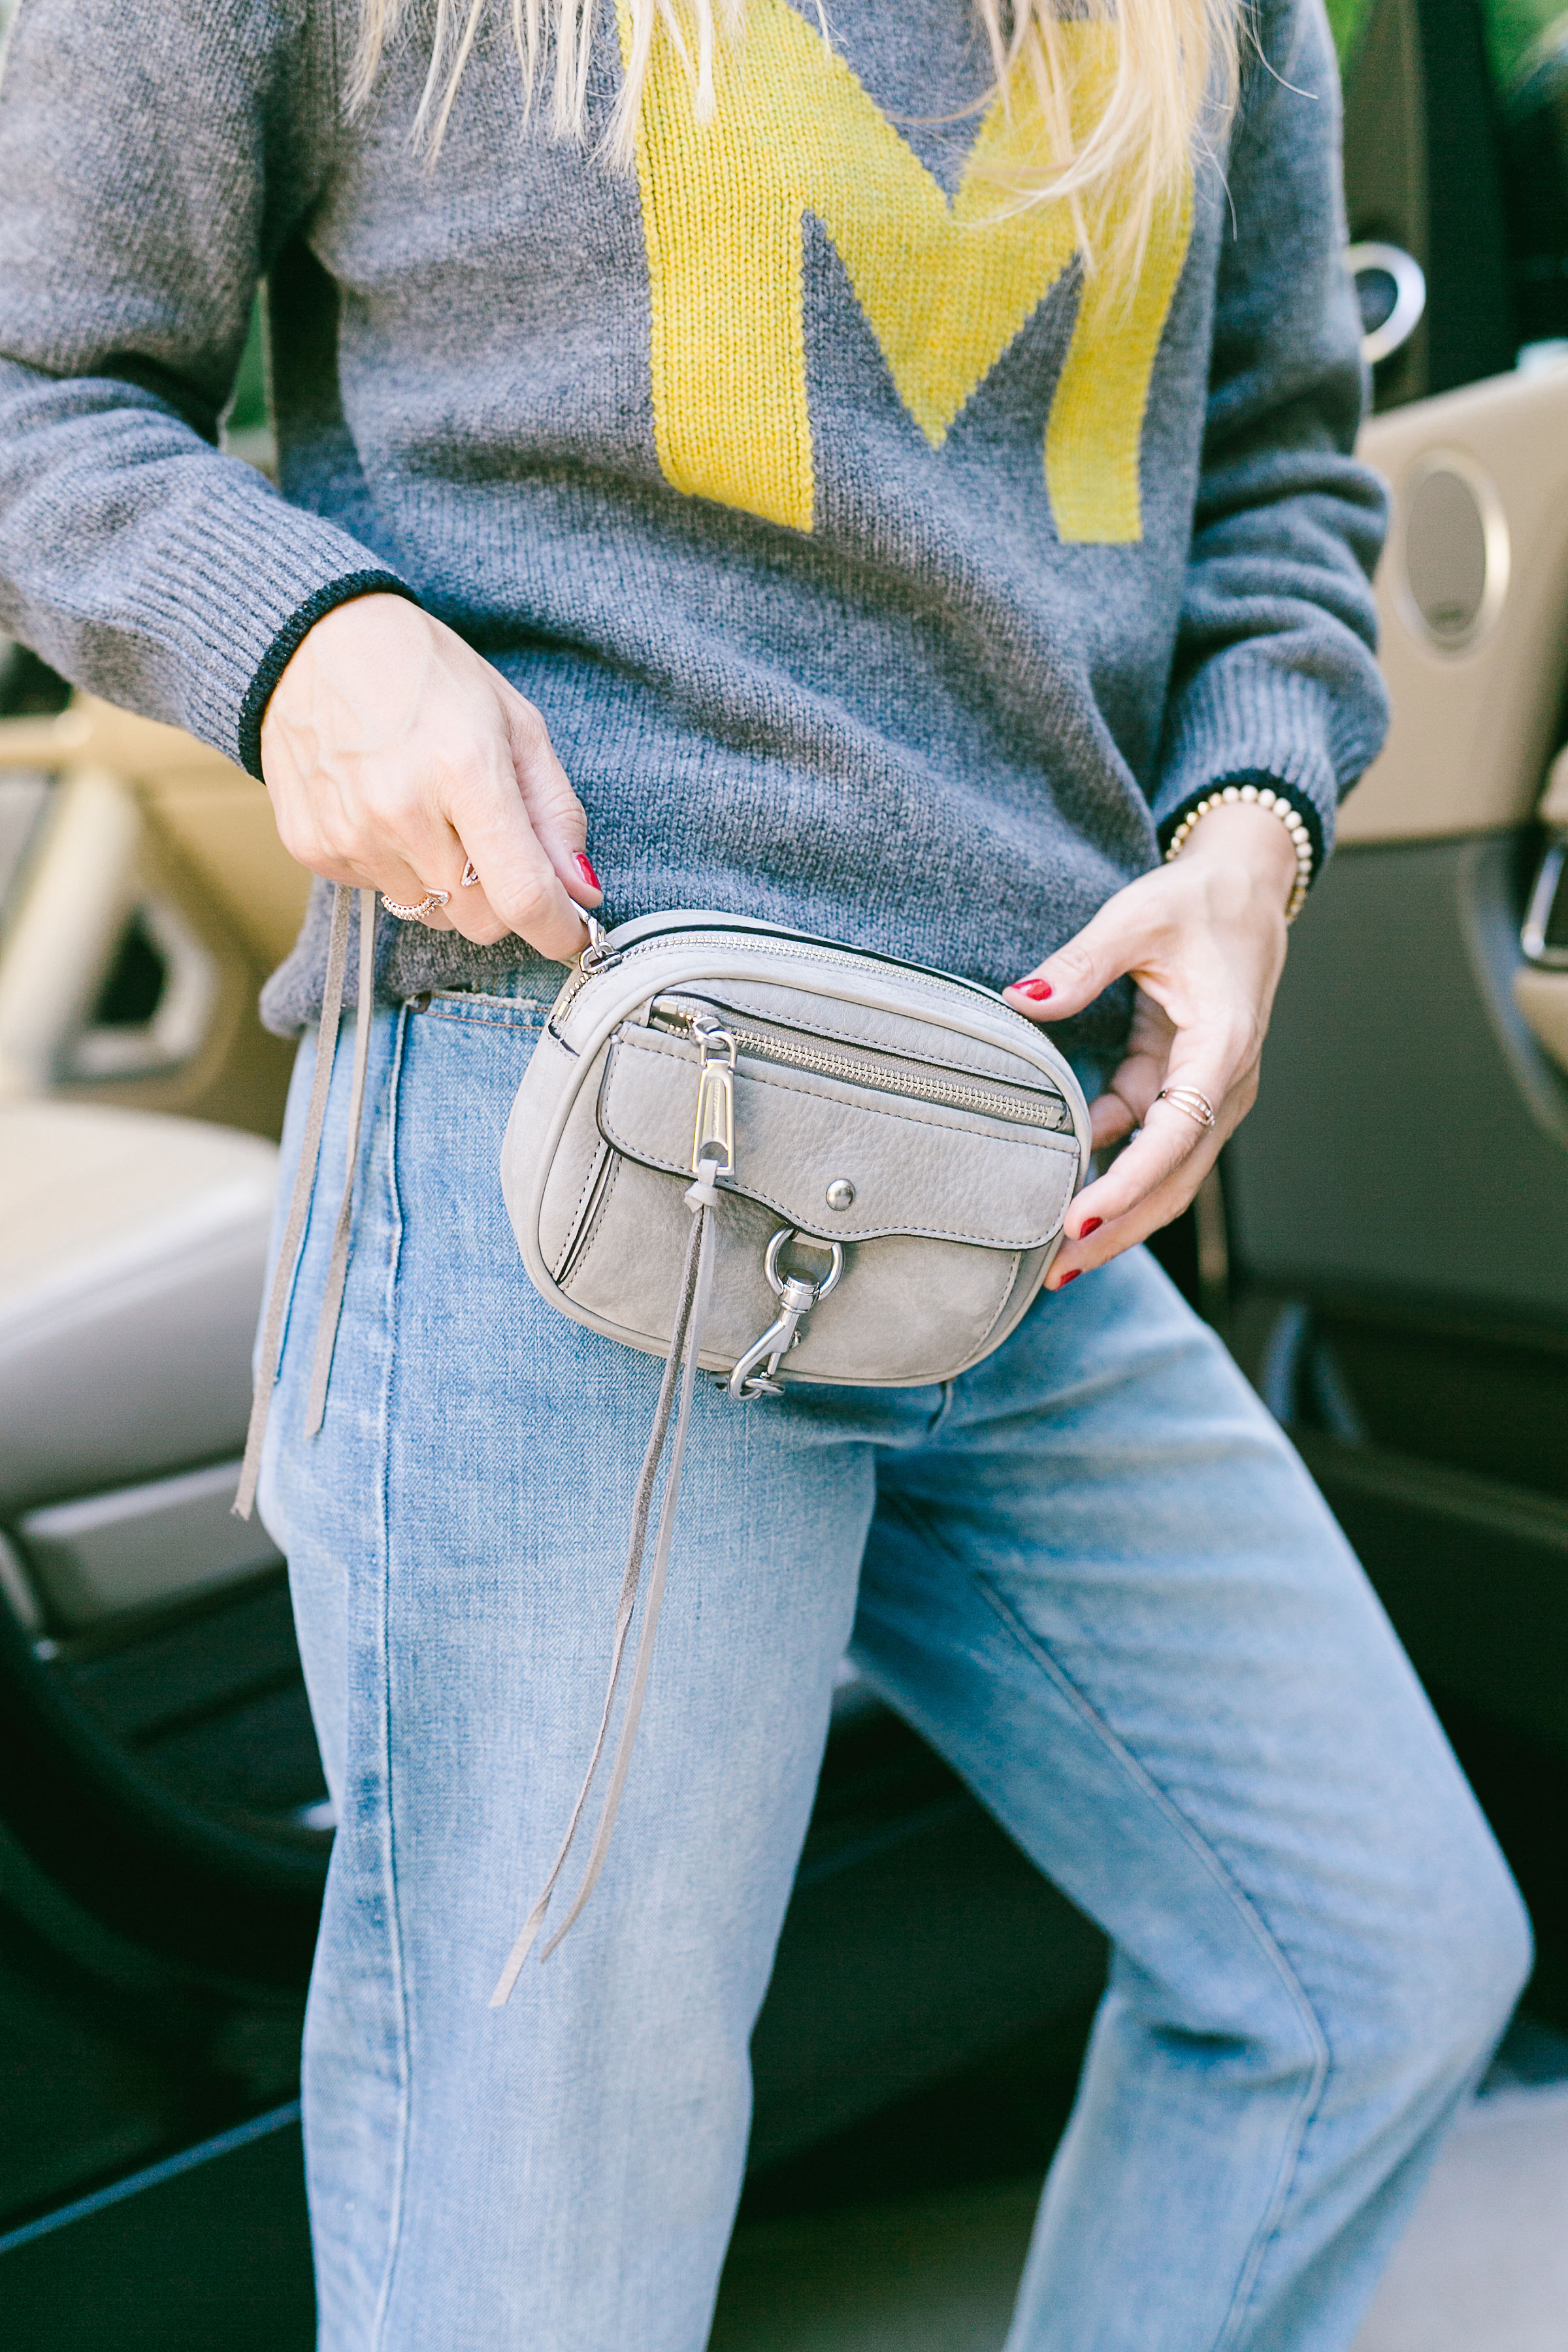 Belt Bags For Every Budget  (Photo: Smith House Photography)